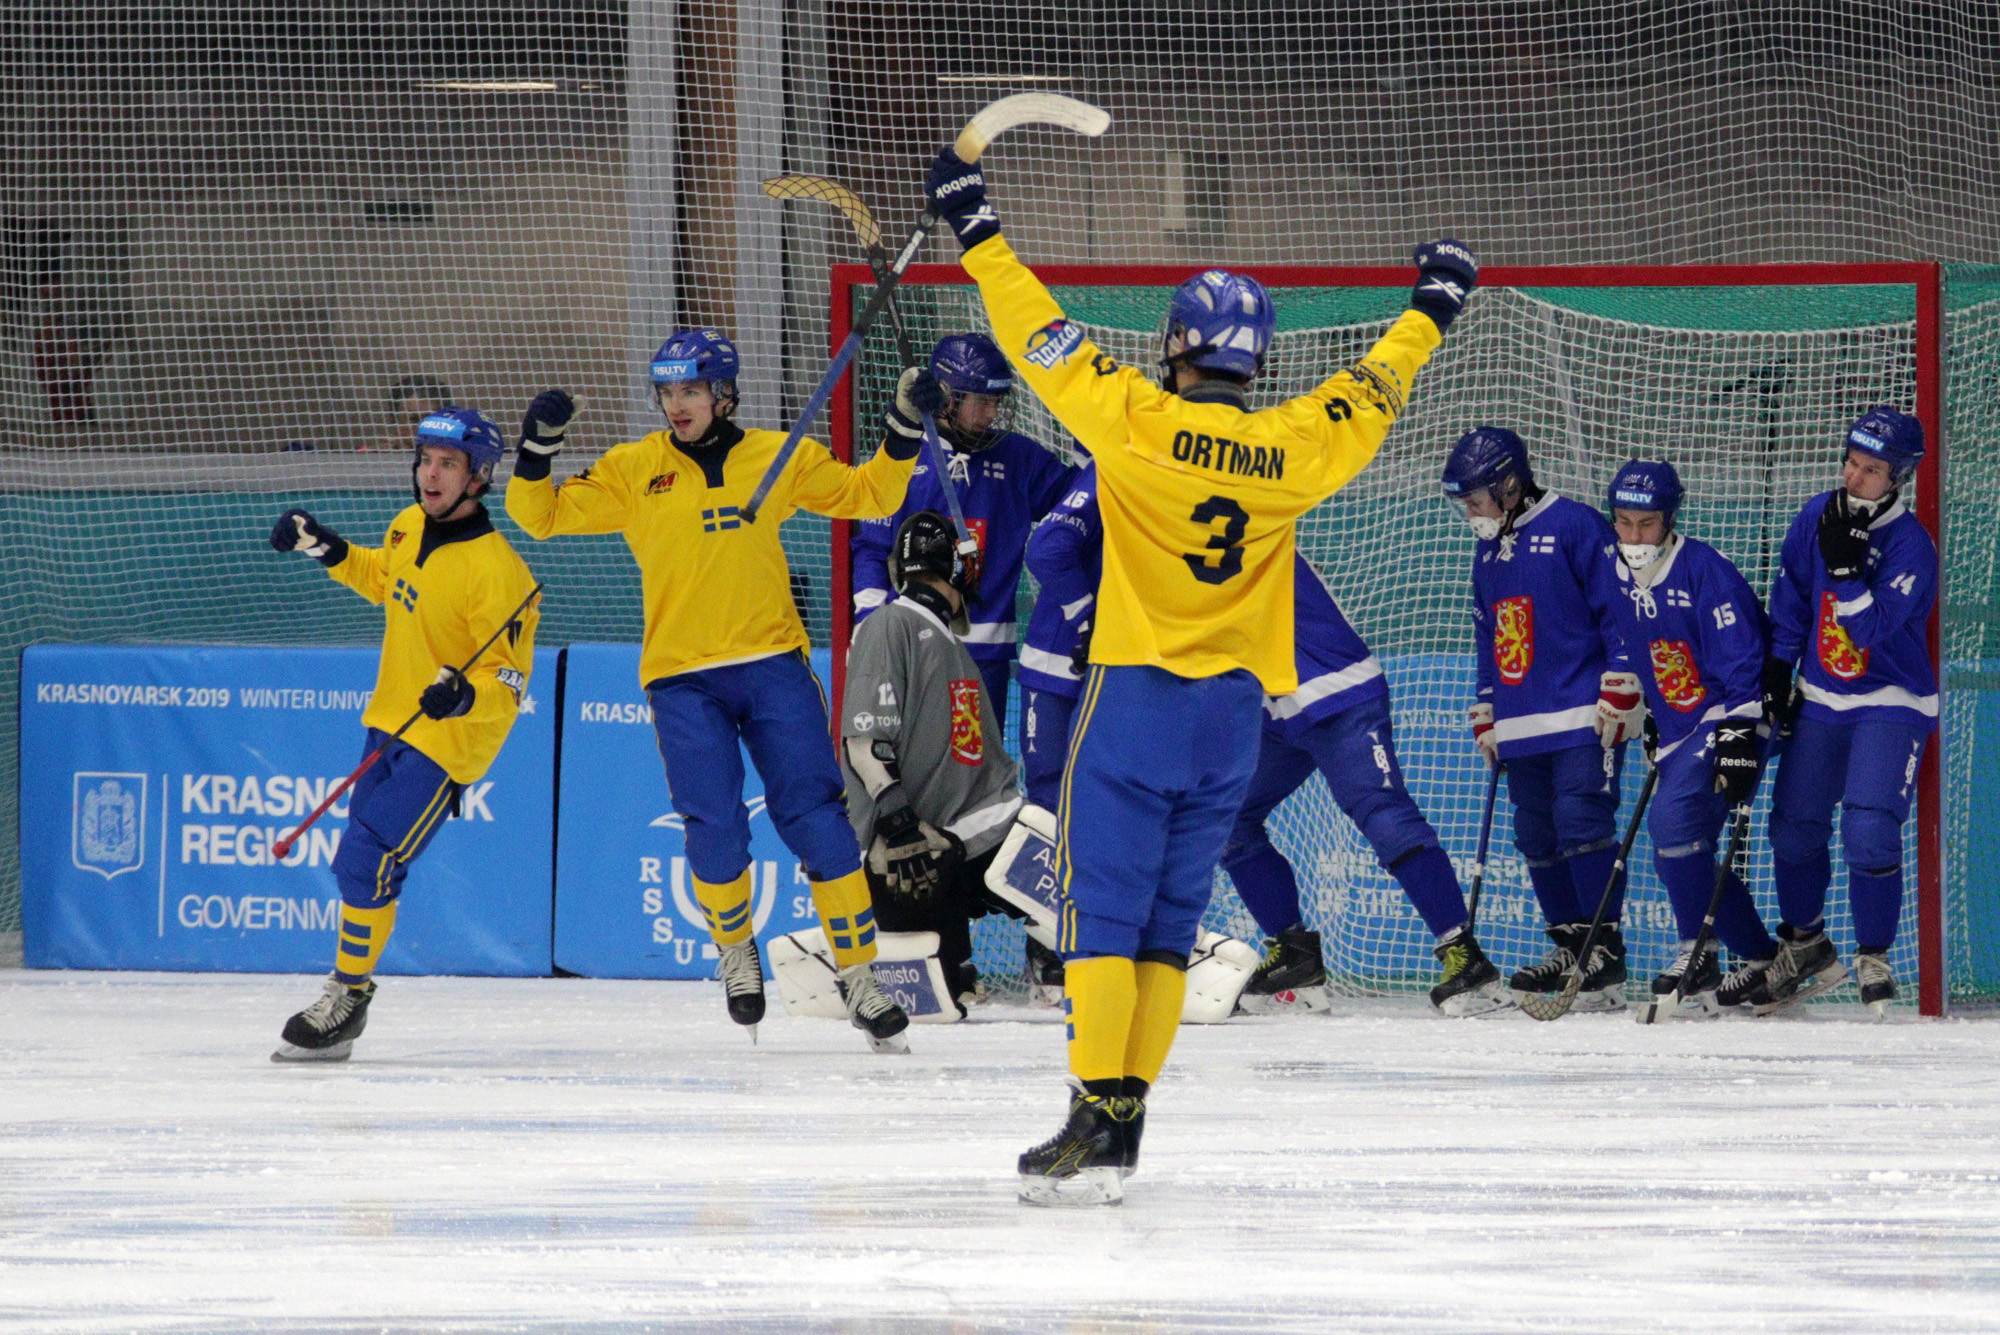 Sweden defeated Finland 10-1 in a preliminary round bandy match at the Yenisei Ice Stadium in Krasnoyarsk ©Krasnoyarsk 2019